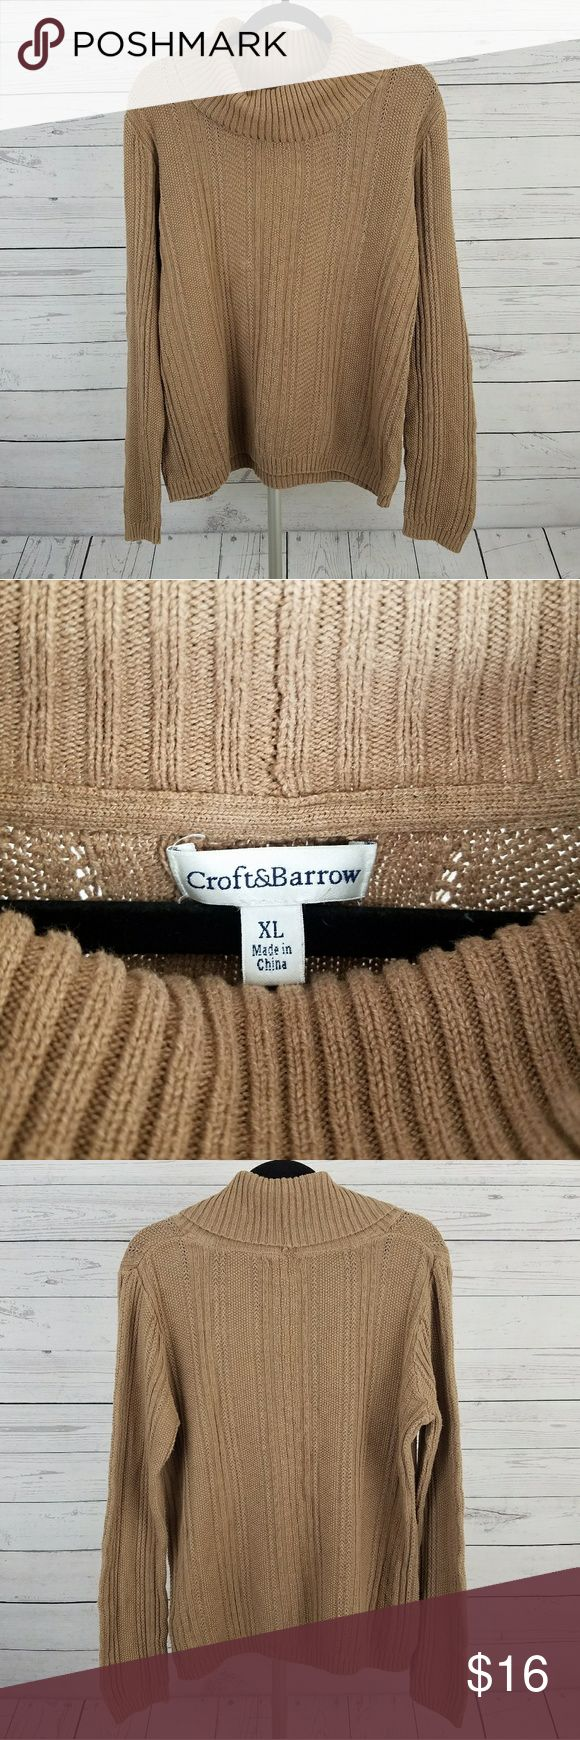 Women's Croft & Barrow Cowl Neck Sweater Size XL This is a women's Croft & Barrow cowl neck sweater in size XL.  *60% Cotton, 40% Acrylic Croft & Barrow Sweaters Cowl & Turtlenecks